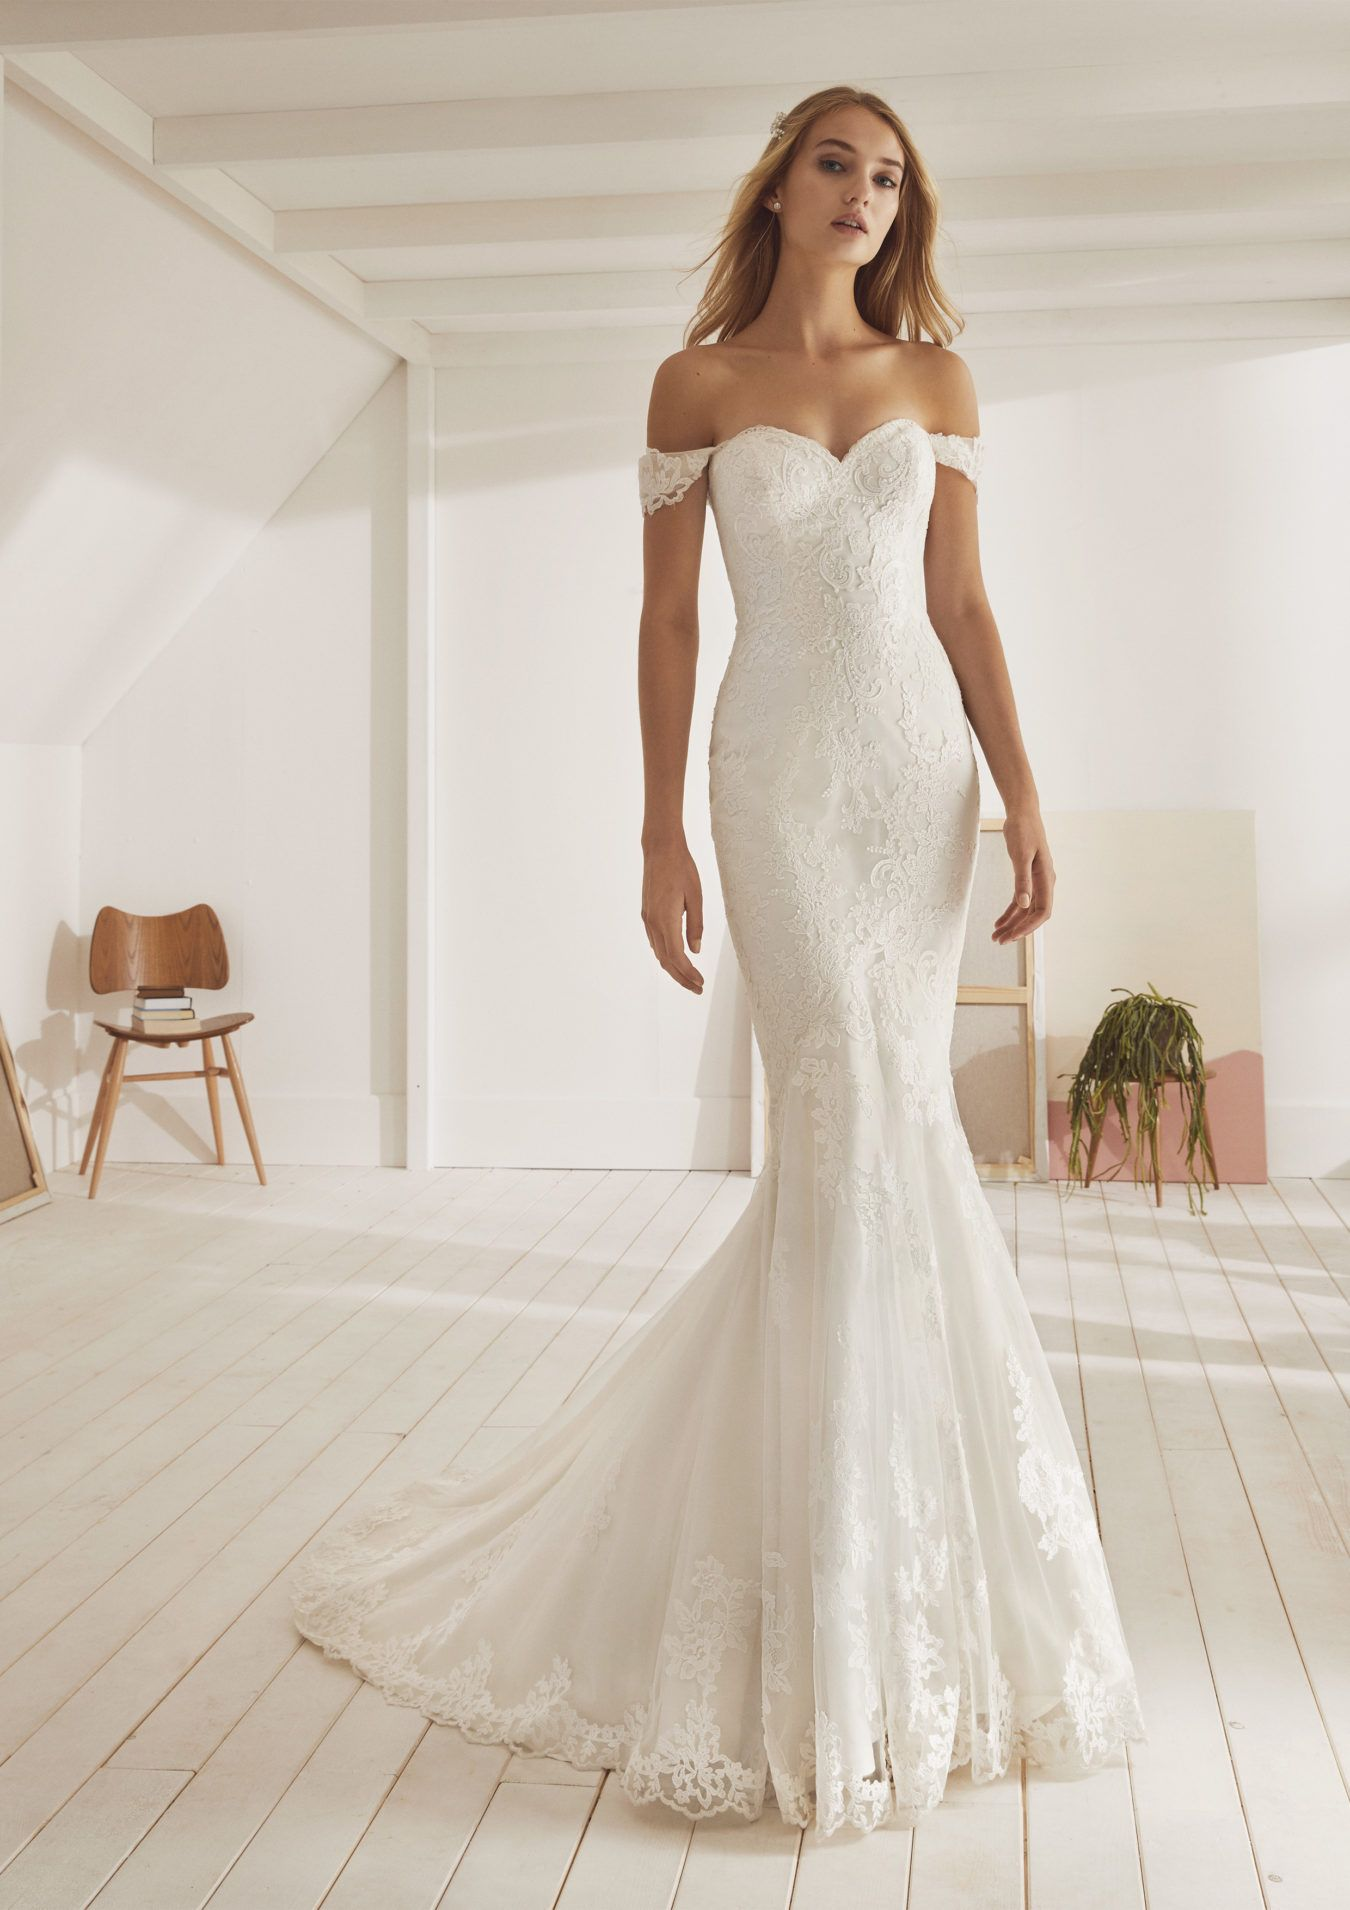 10 Pin Worthy Wedding Dresses You Need To Try On Right Now Wedding Dresses Mermaid Trumpet Wedding Dresses Chic Wedding Dresses [ 1910 x 1350 Pixel ]